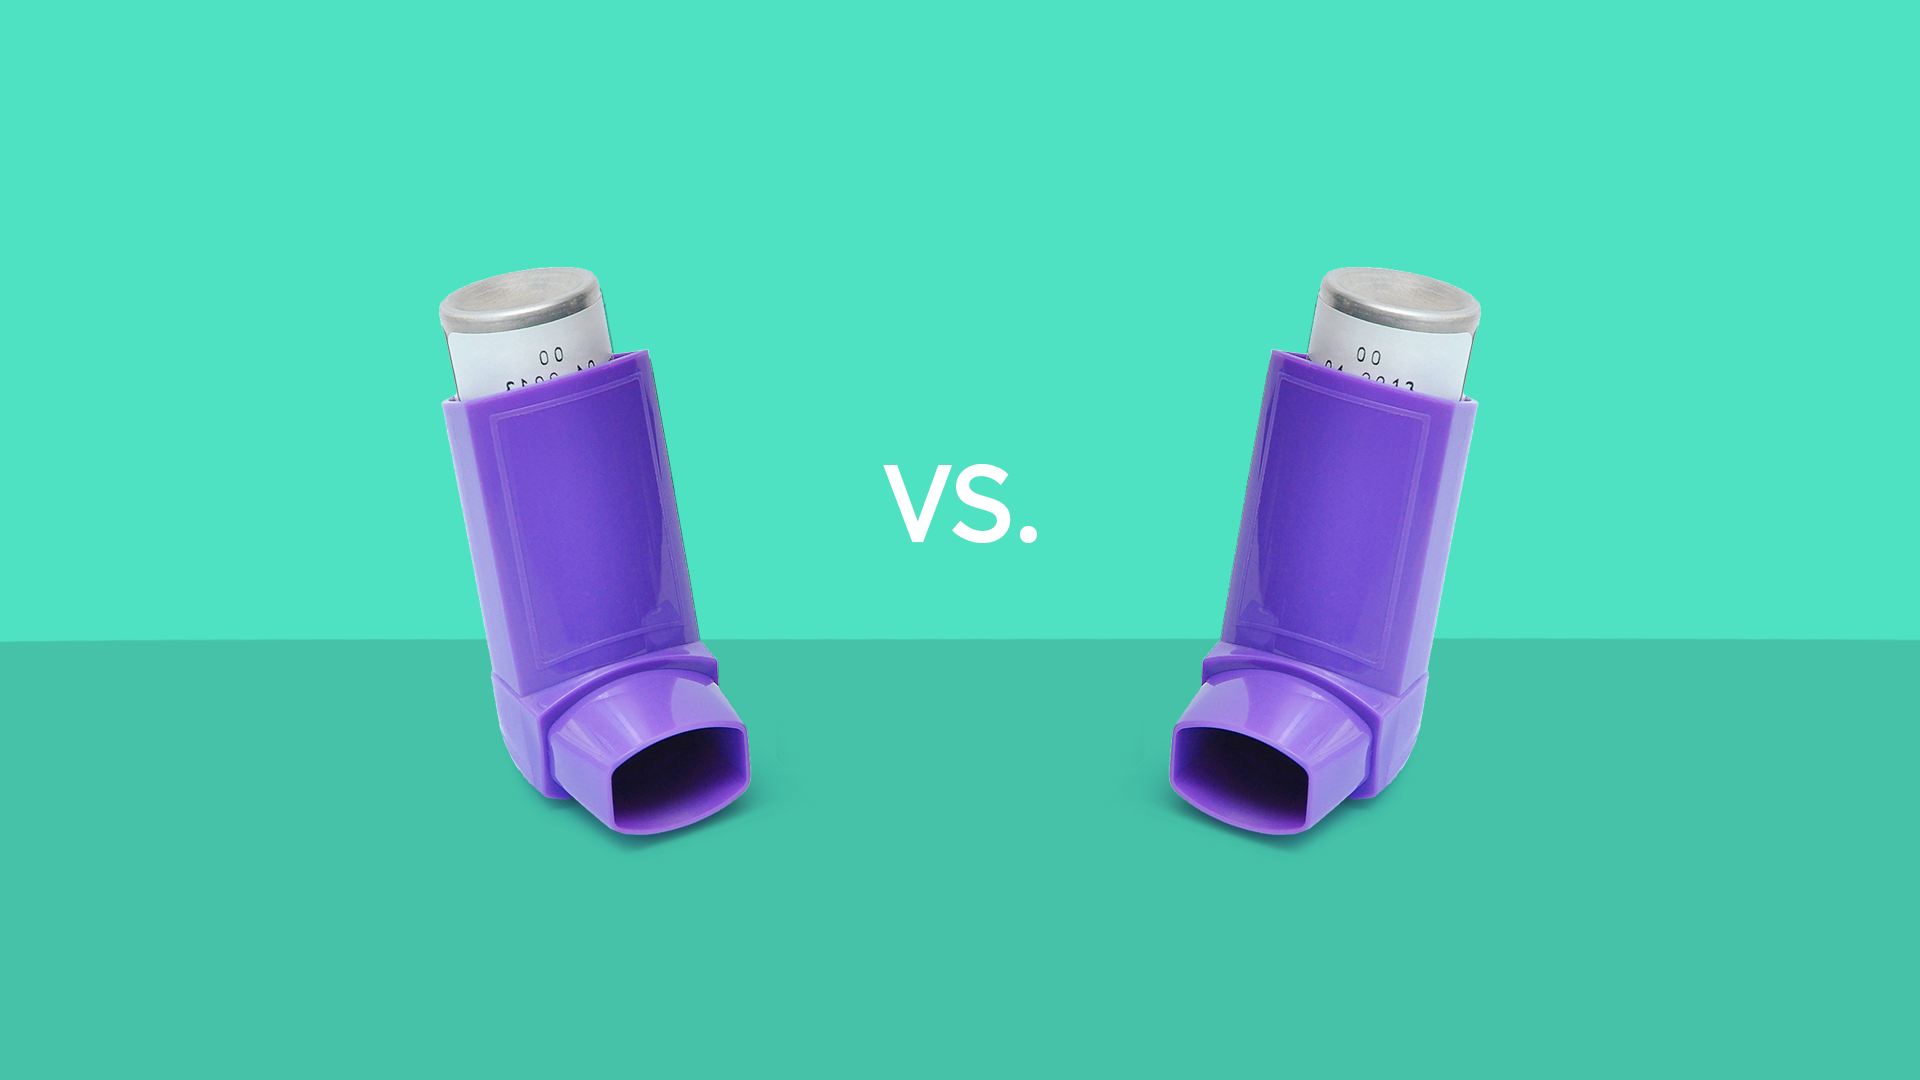 Levalbuterol vs. Albuterol: Differences, similarities, and which is better for you